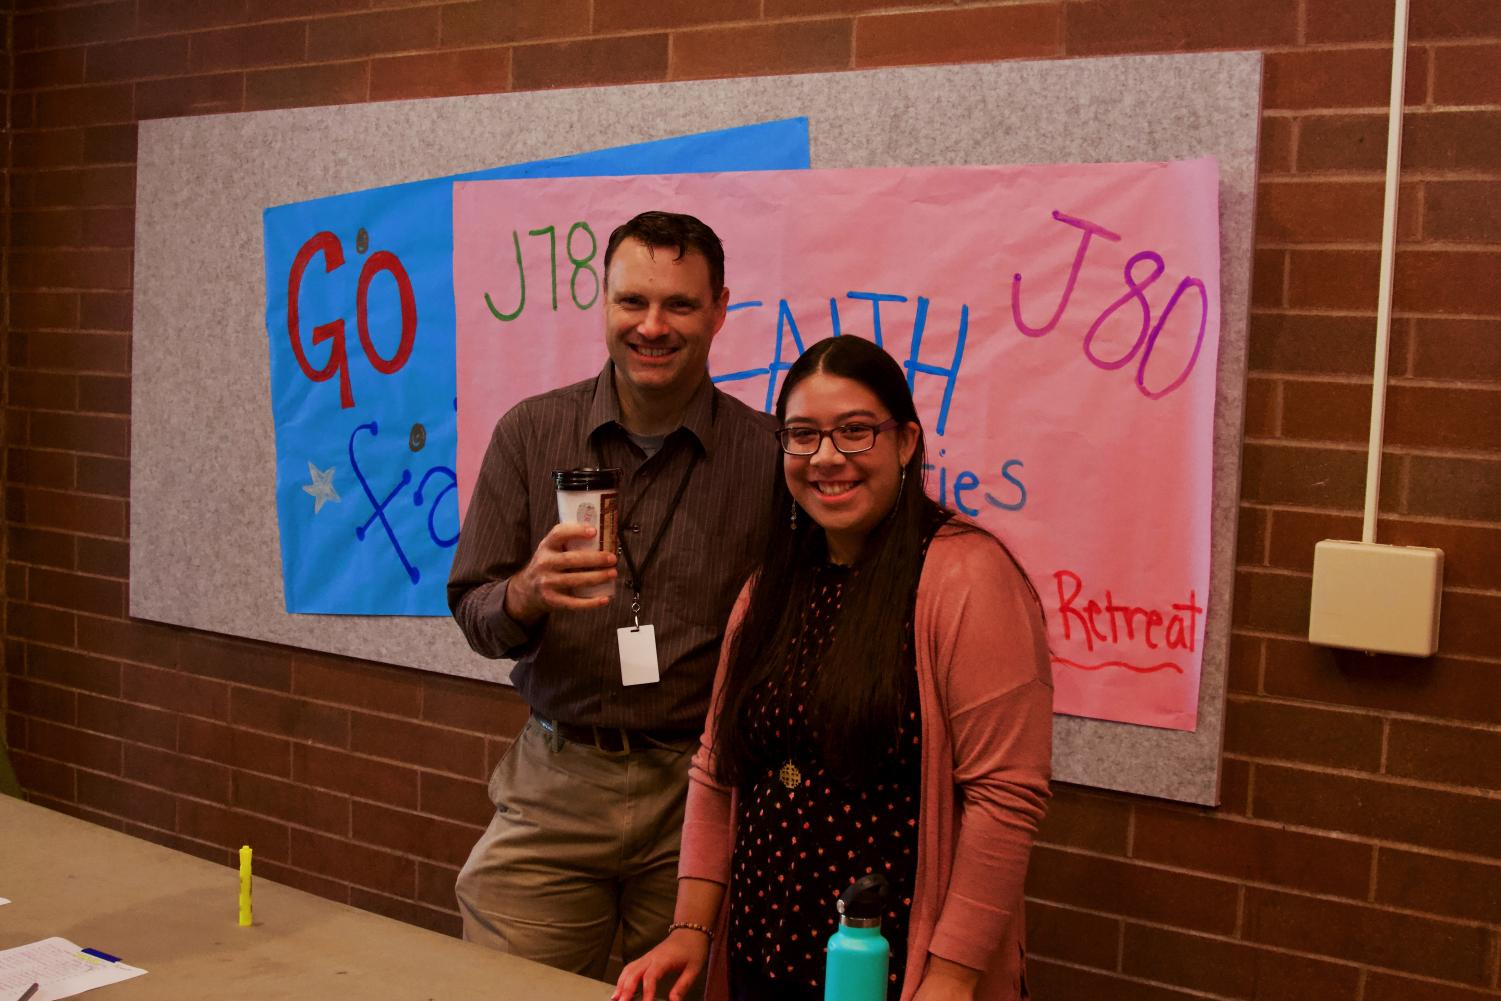 Director+of+Faith+Gary+Hortsch+and+senior+Aylin+Begines+Flores+welcoming+students+to+sign+up+for+Jouney.